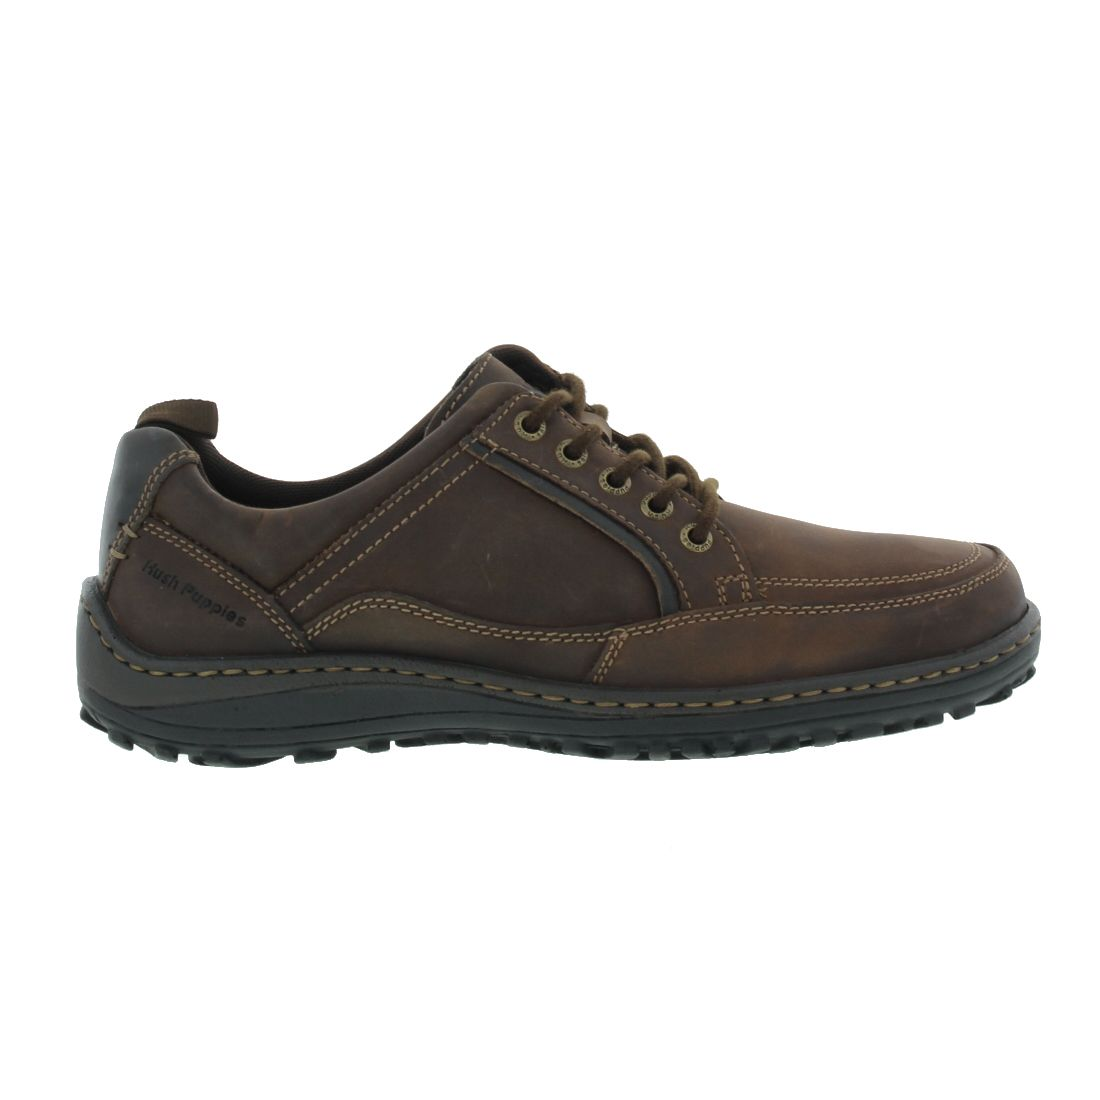 hush puppies belfast oxford mt mens brown leather wide fit